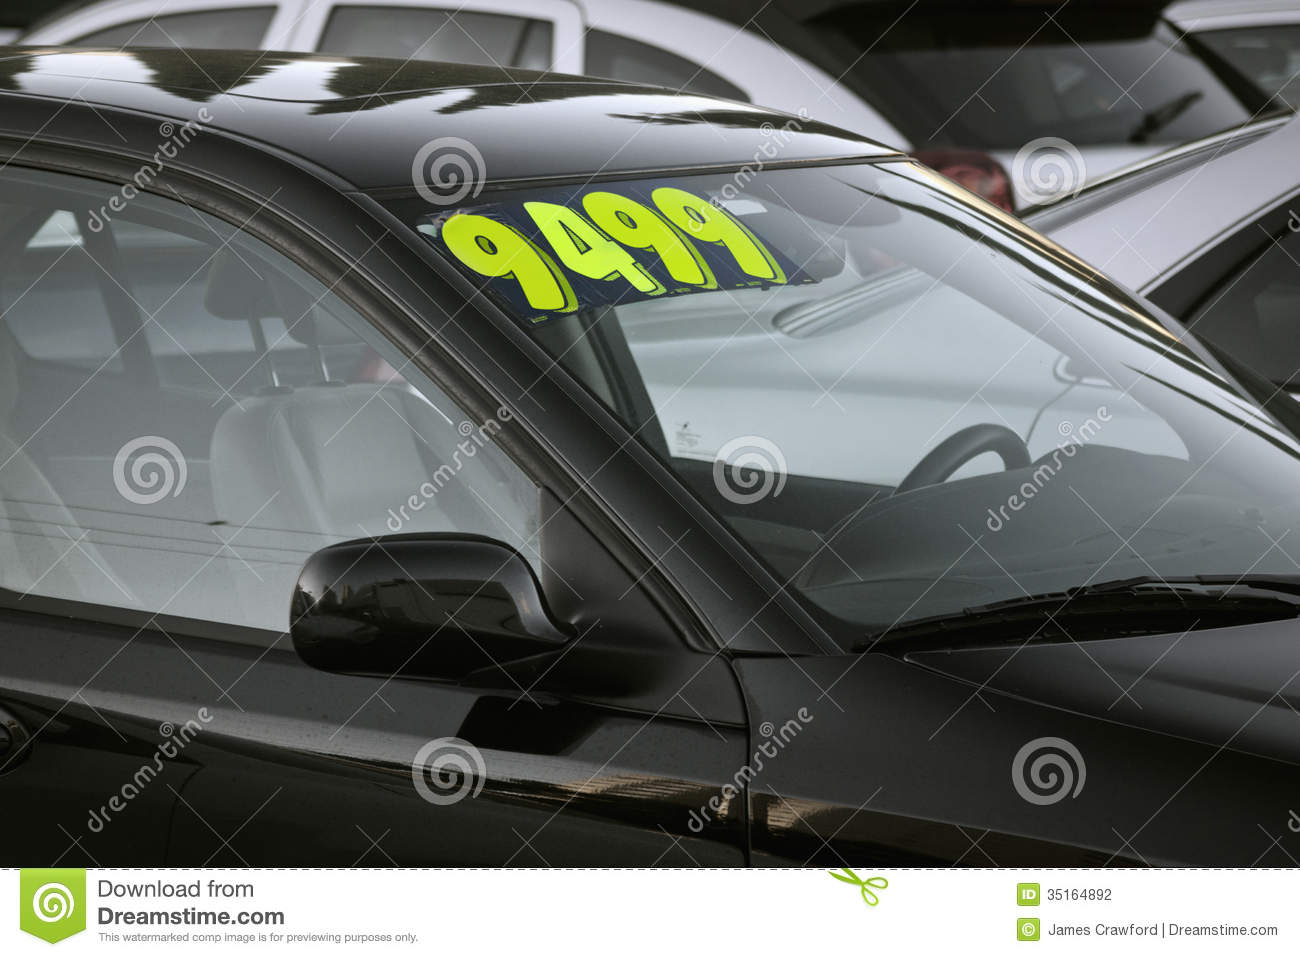 Used car for sale stock photo. Image of salesman, sale - 35164892